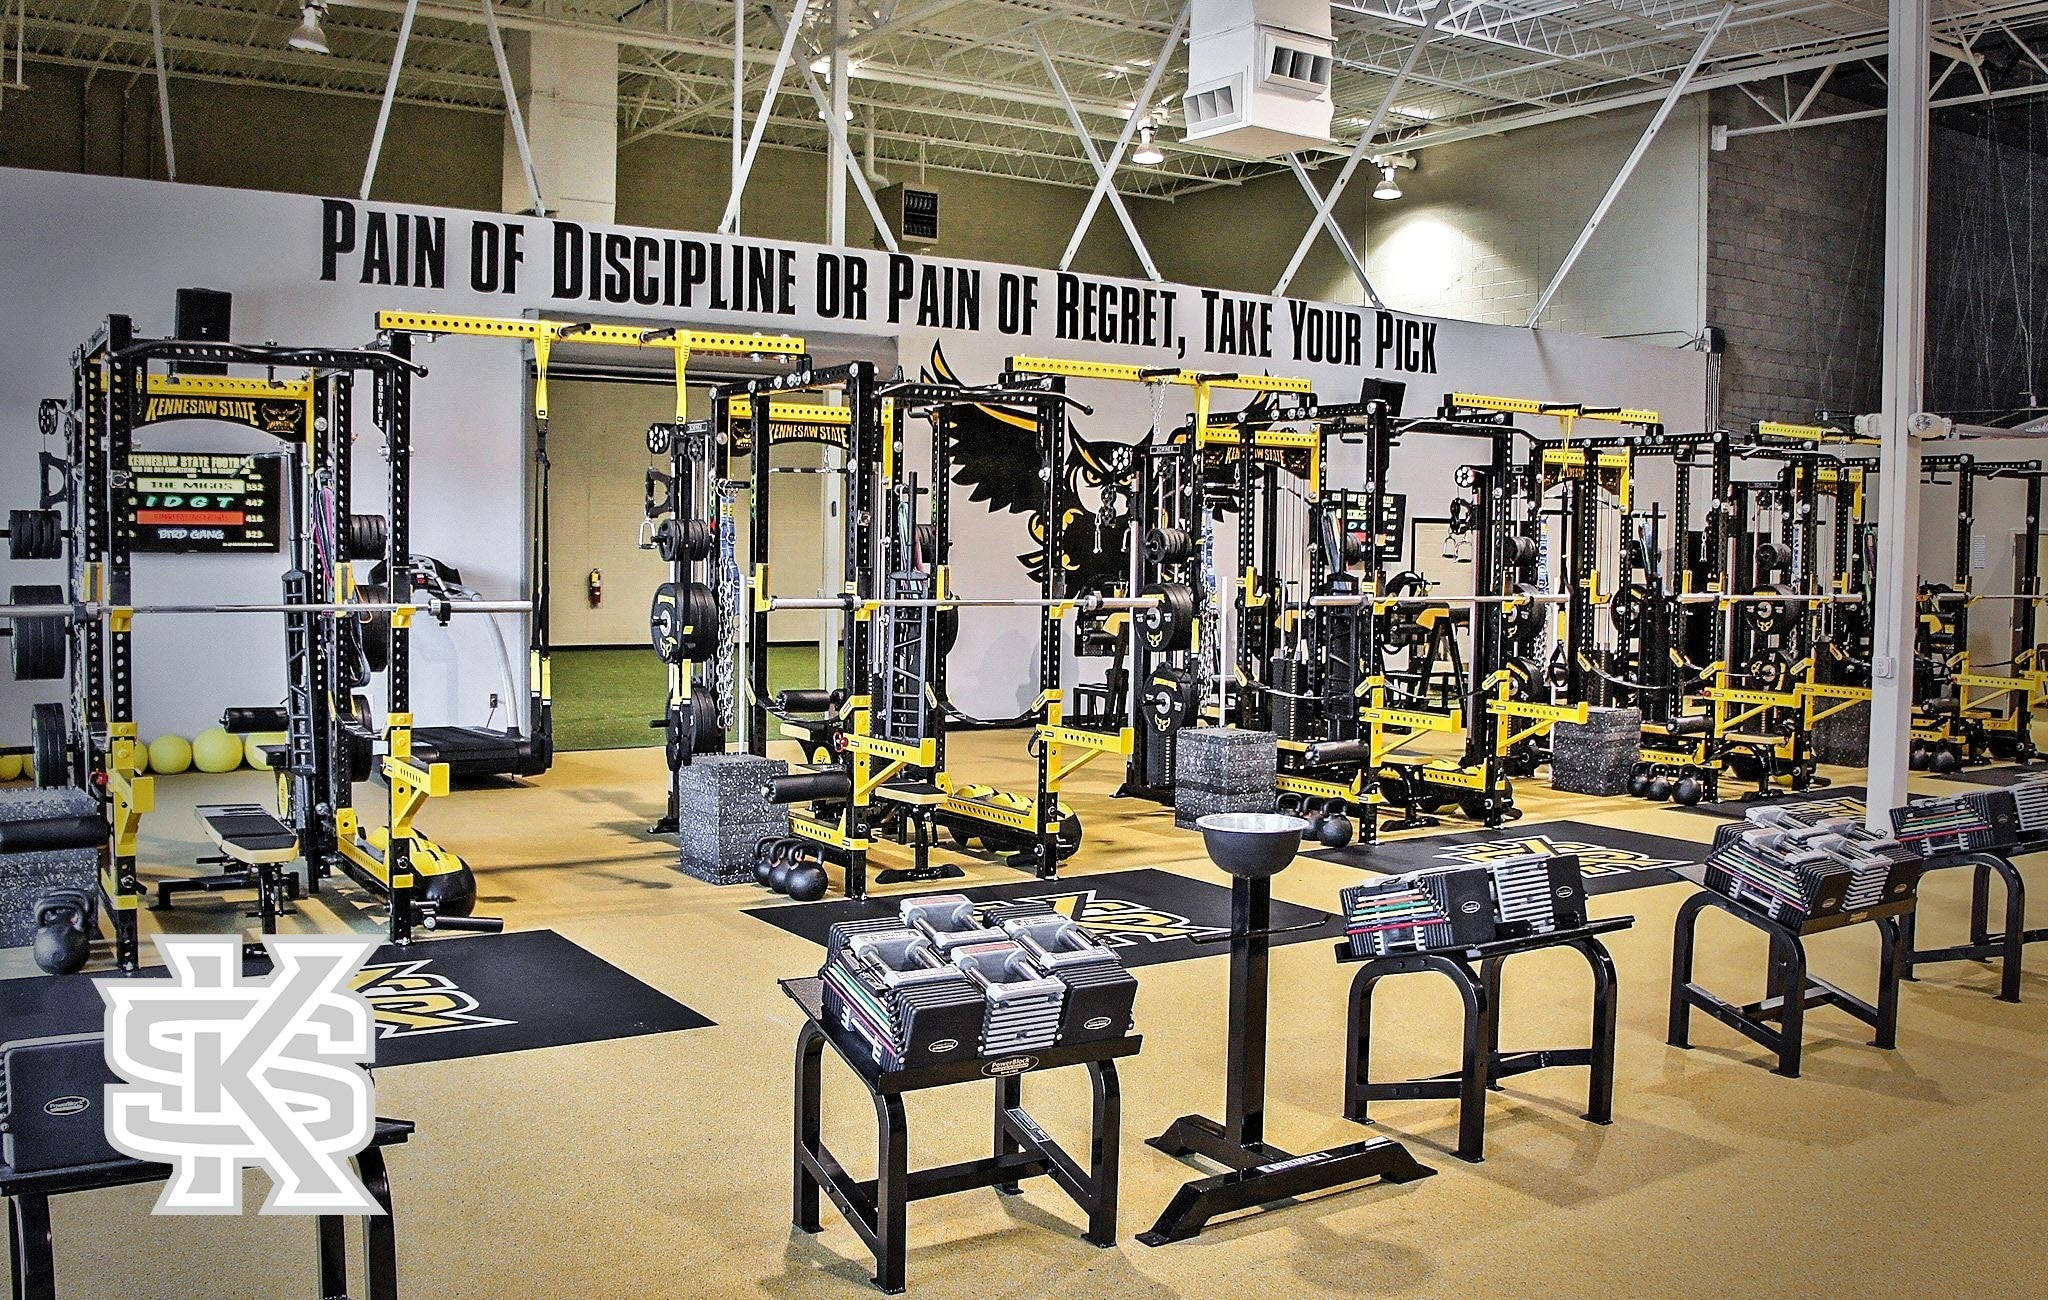 Kennesaw State Sorinex strength and conditioning facility